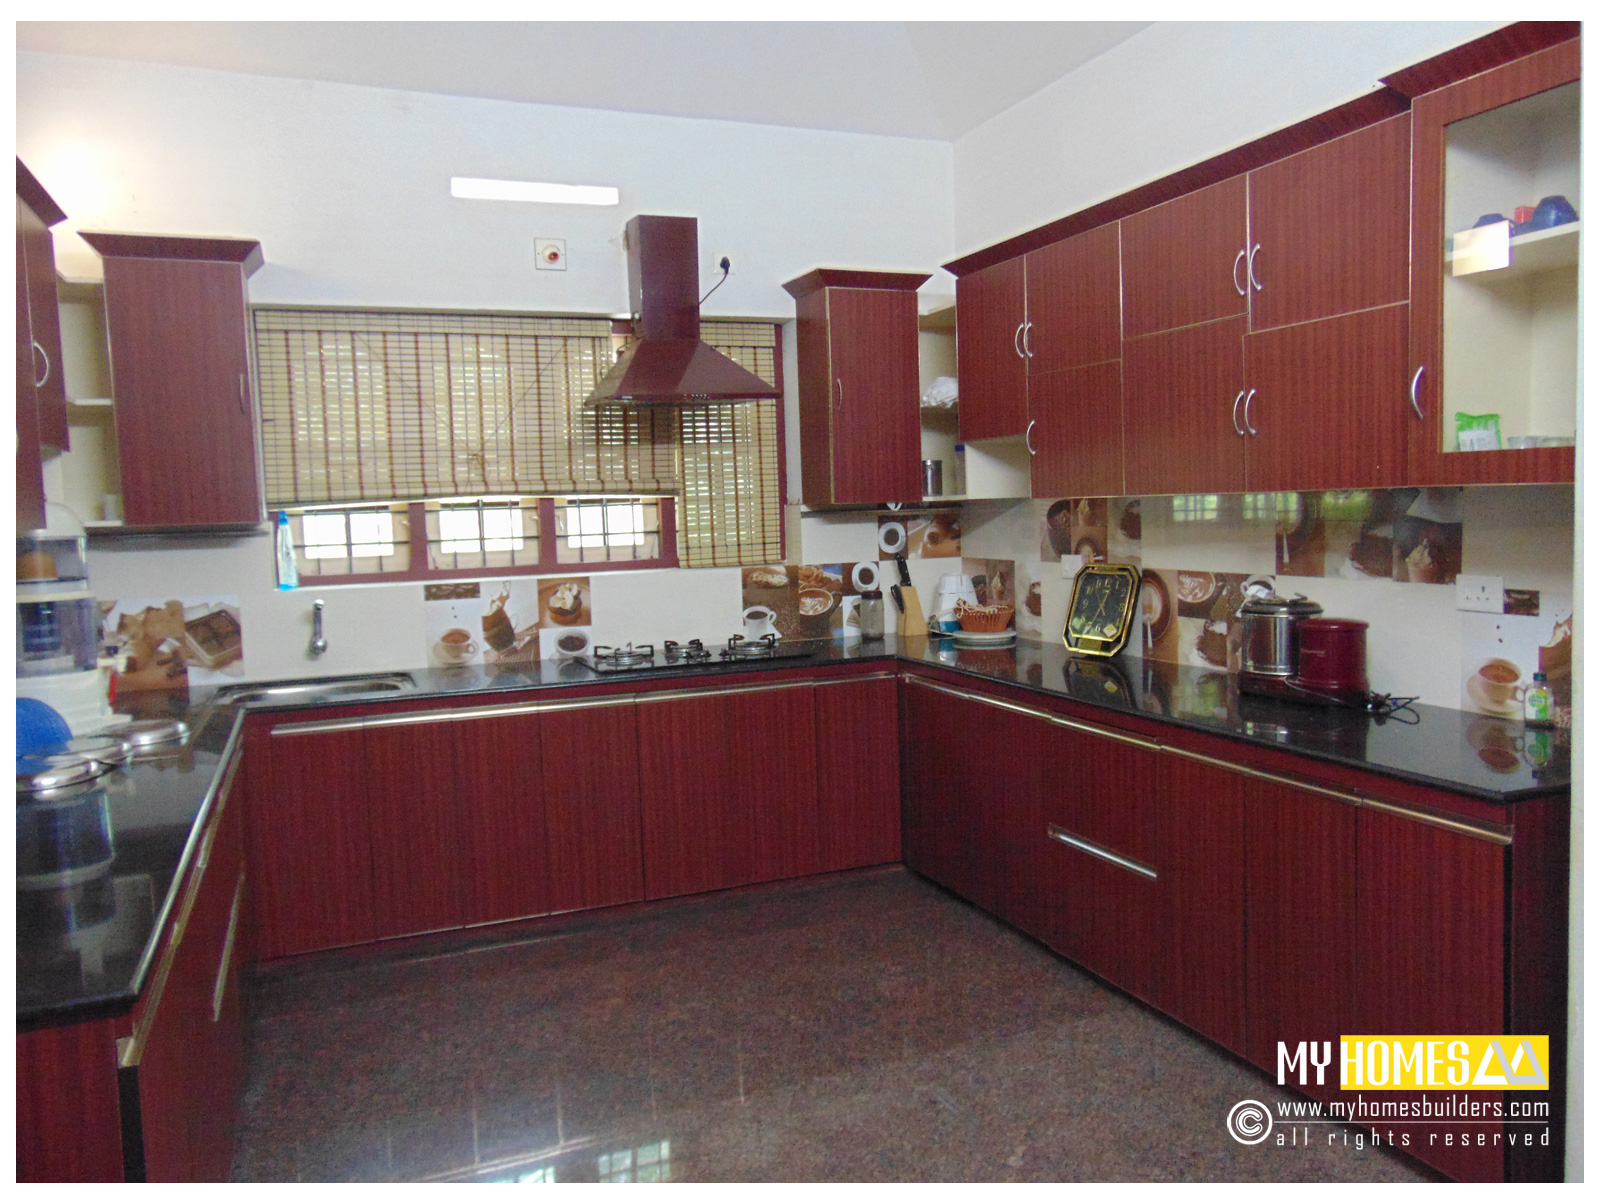 Budget house kerala home designers builder in thrissur india for Latest interior design for kitchen